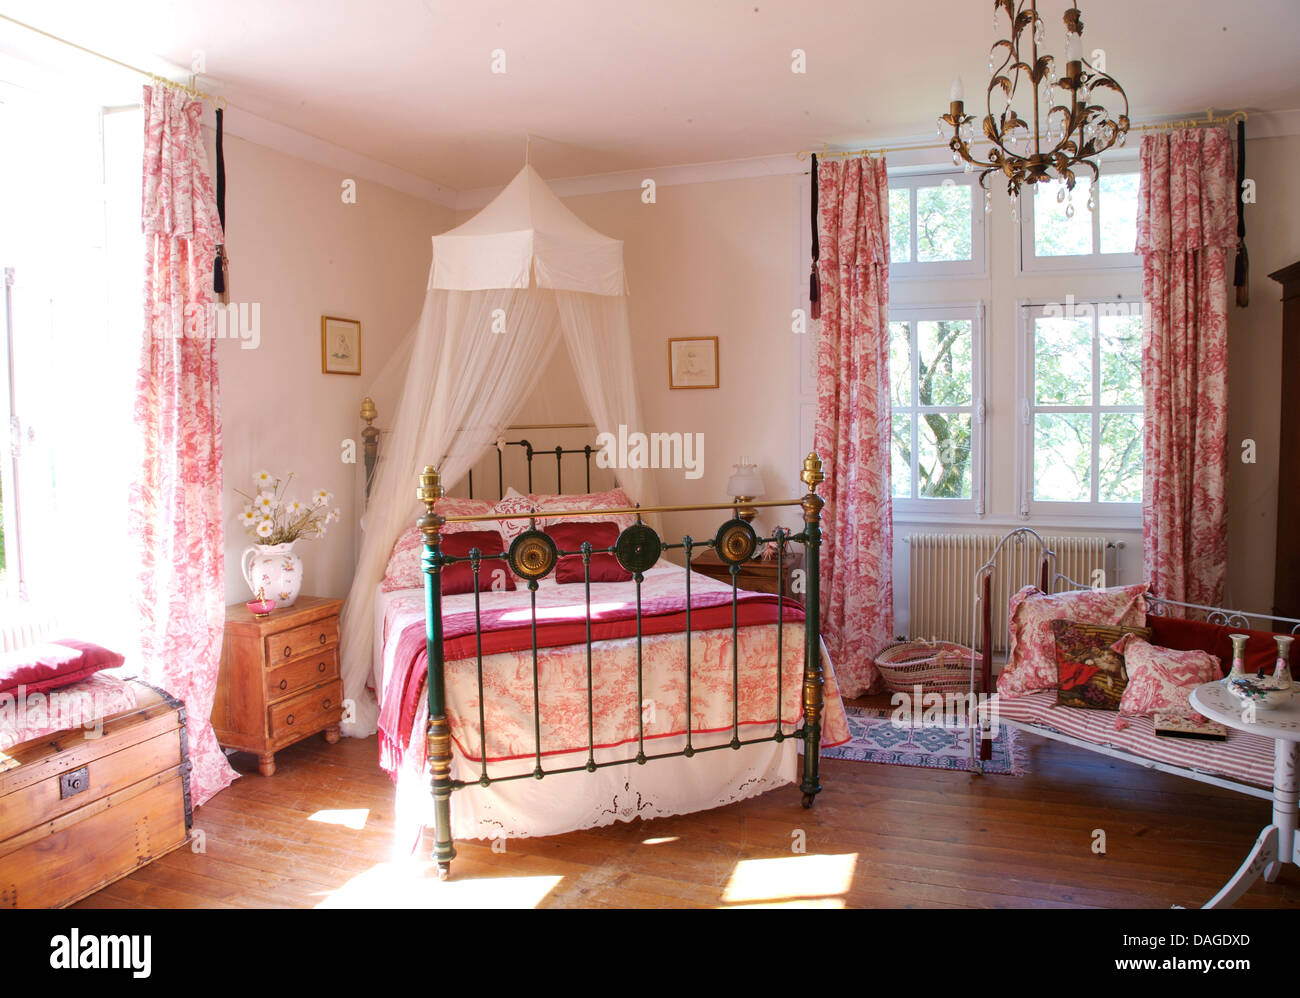 White Voile Mosquito Net Above Brass Bed With Toile De